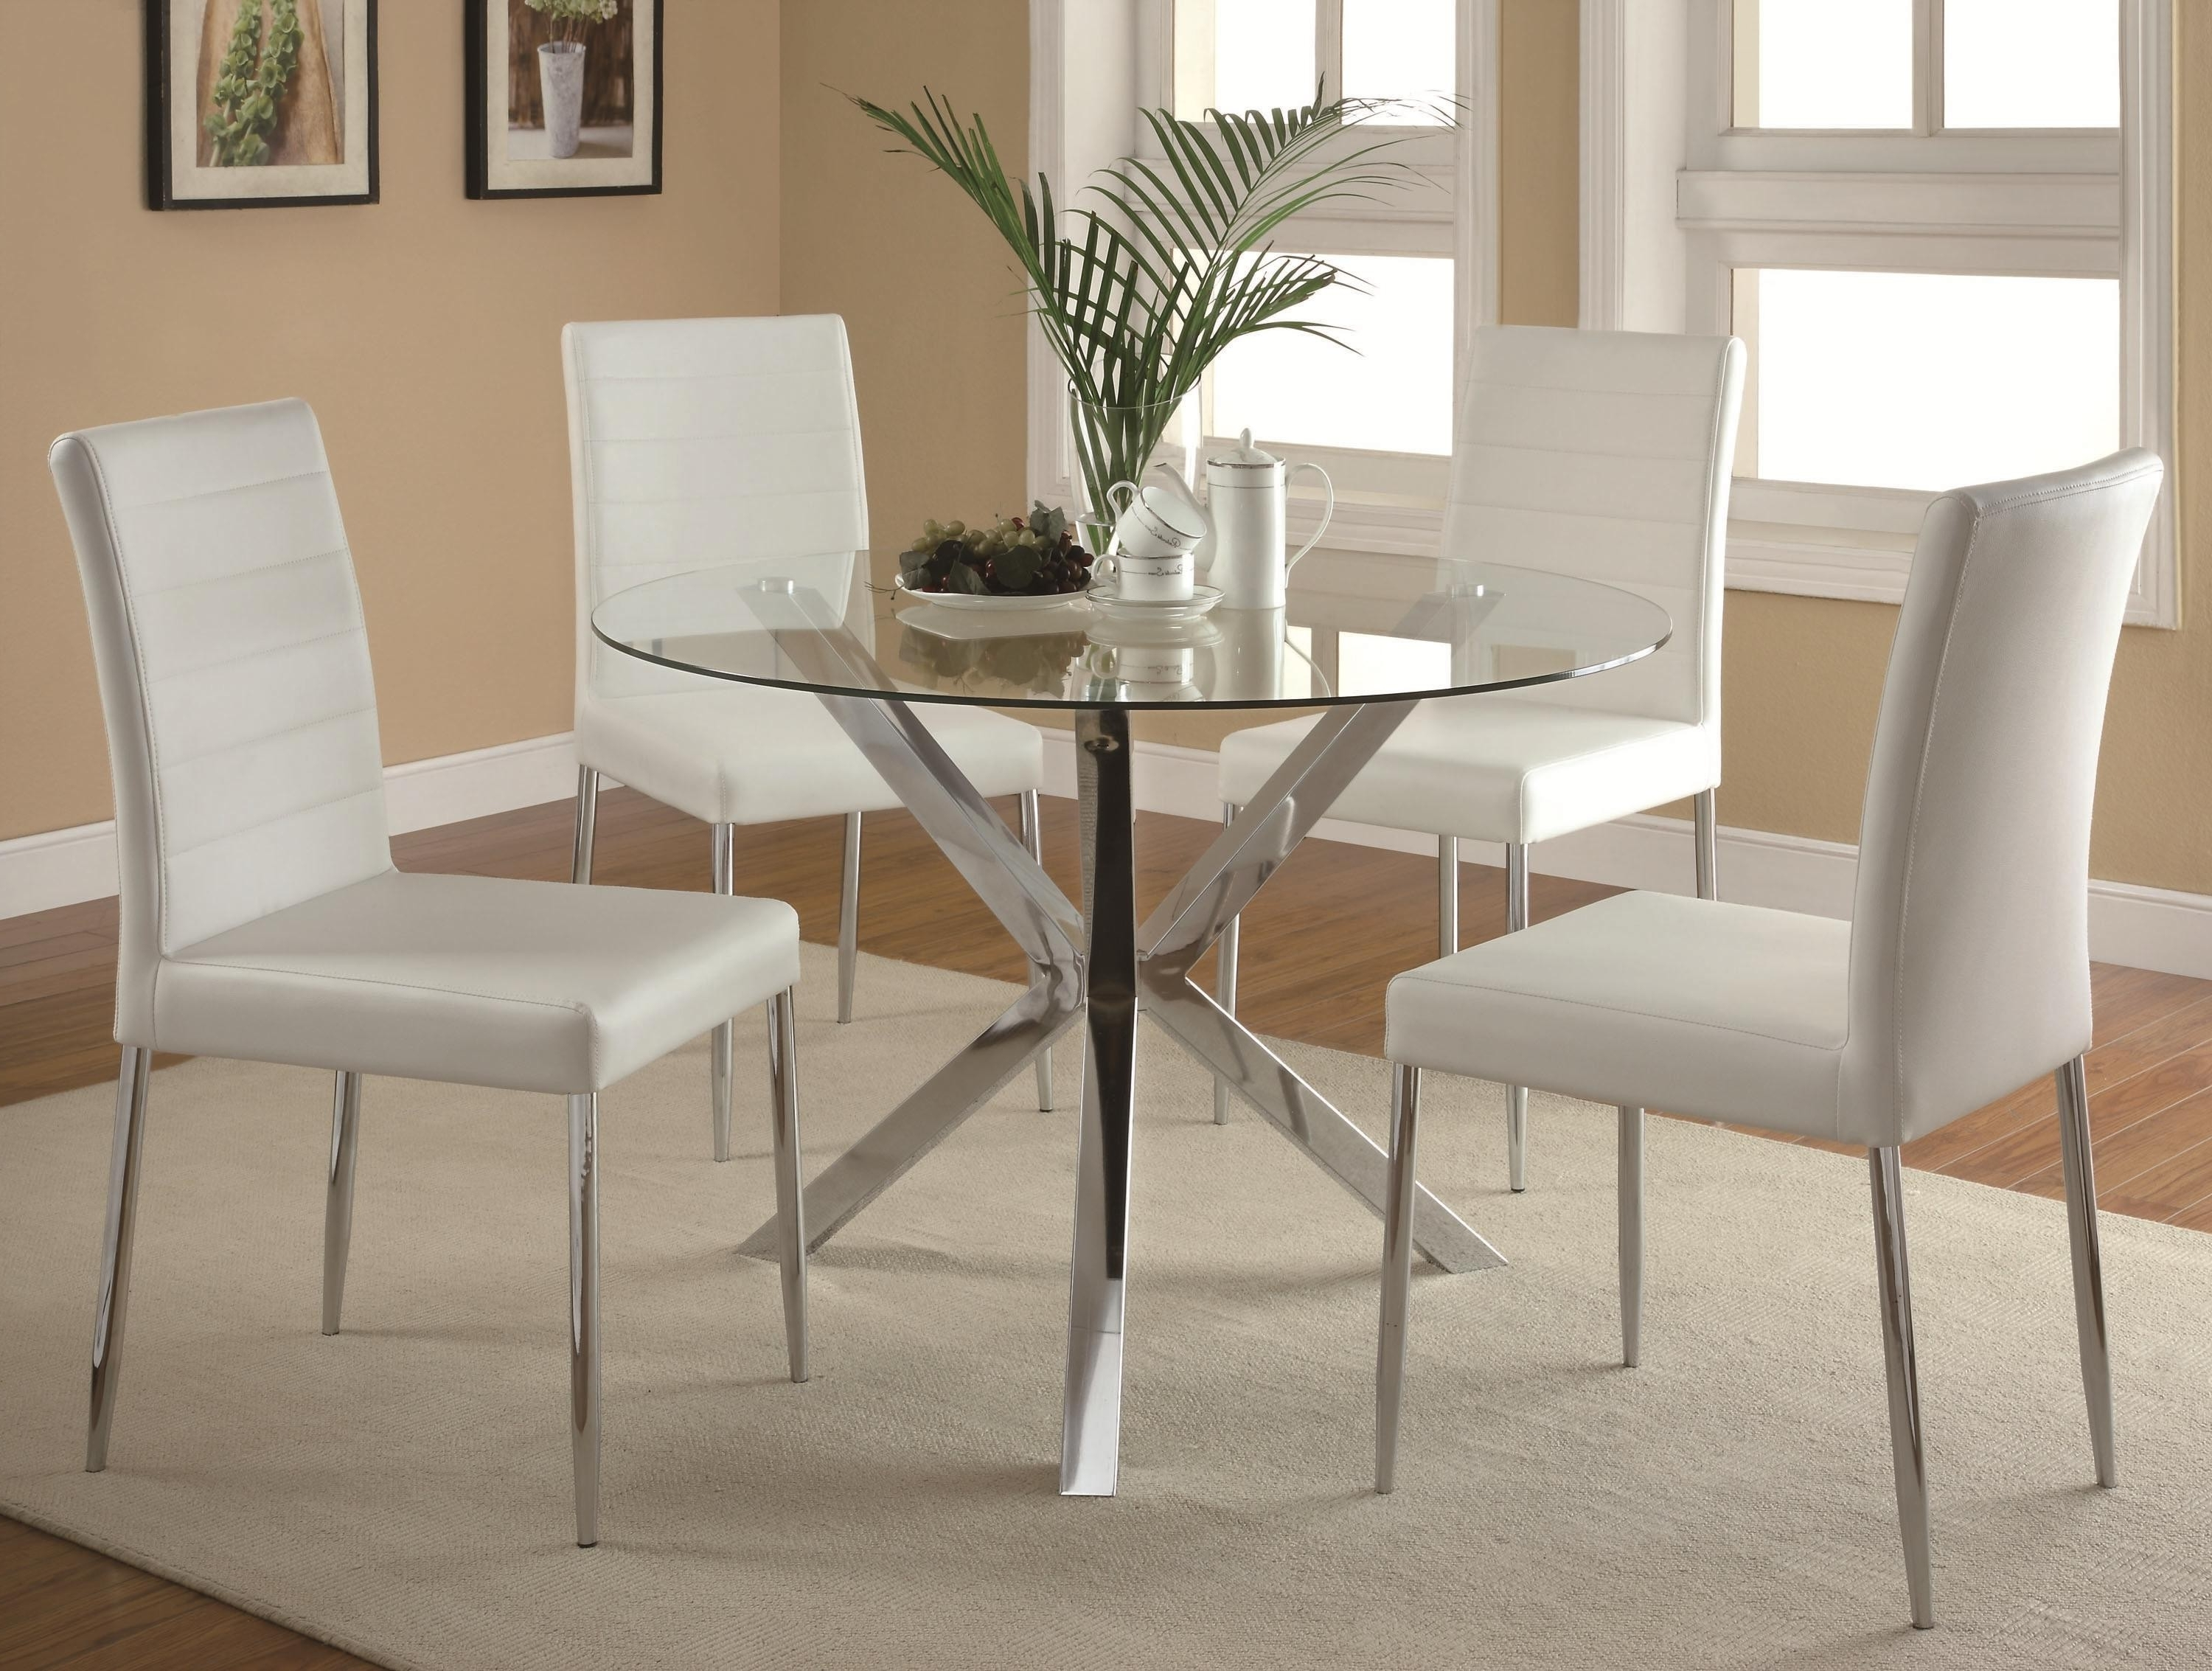 Well Liked Cheap Glass Dining Tables And 4 Chairs Throughout Contemporary Round Glass Dining Table Best Of Glass Top Dining Table (View 20 of 25)